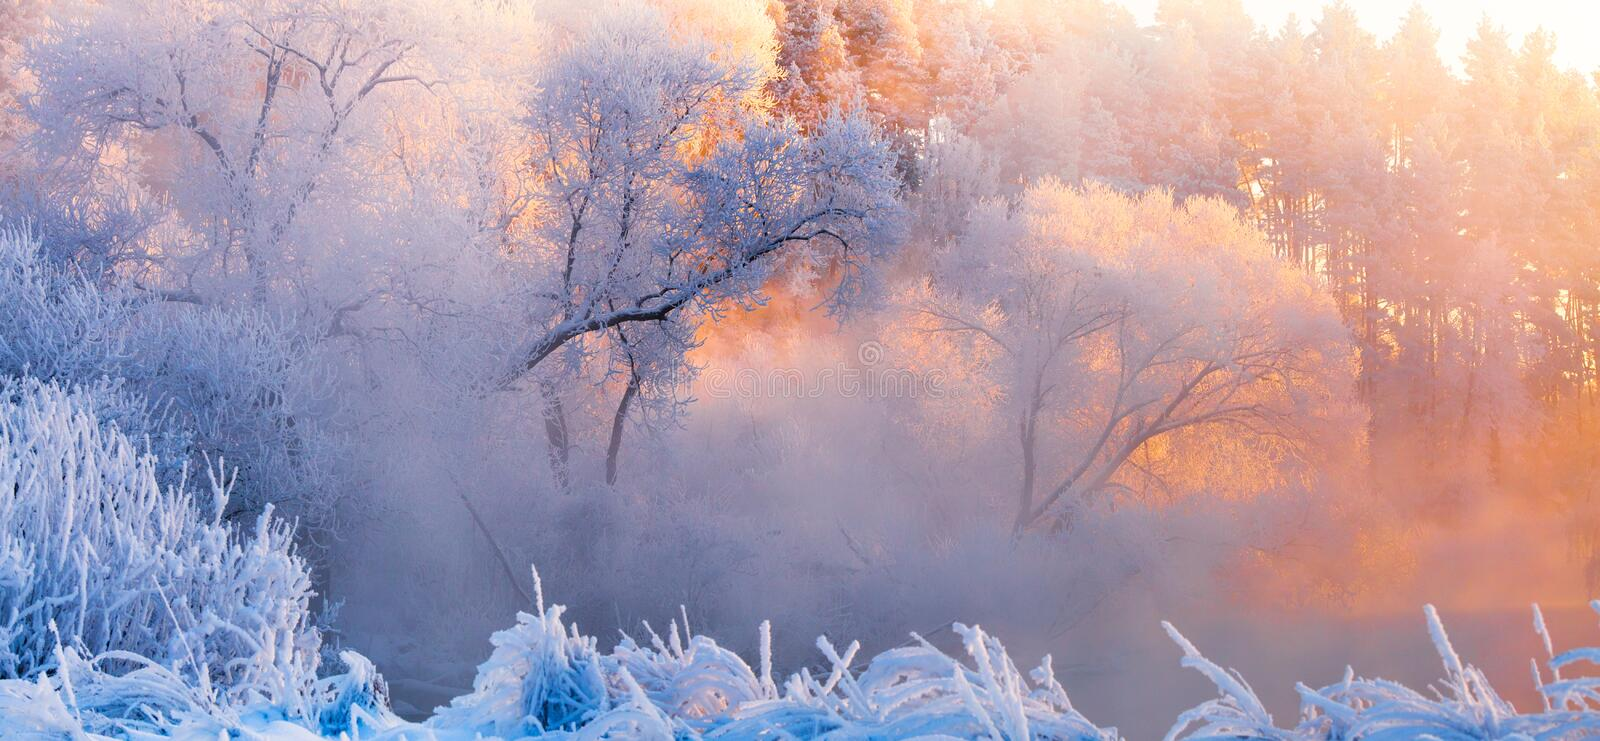 Matin de Frosty Christmas   L'hiver photos libres de droits